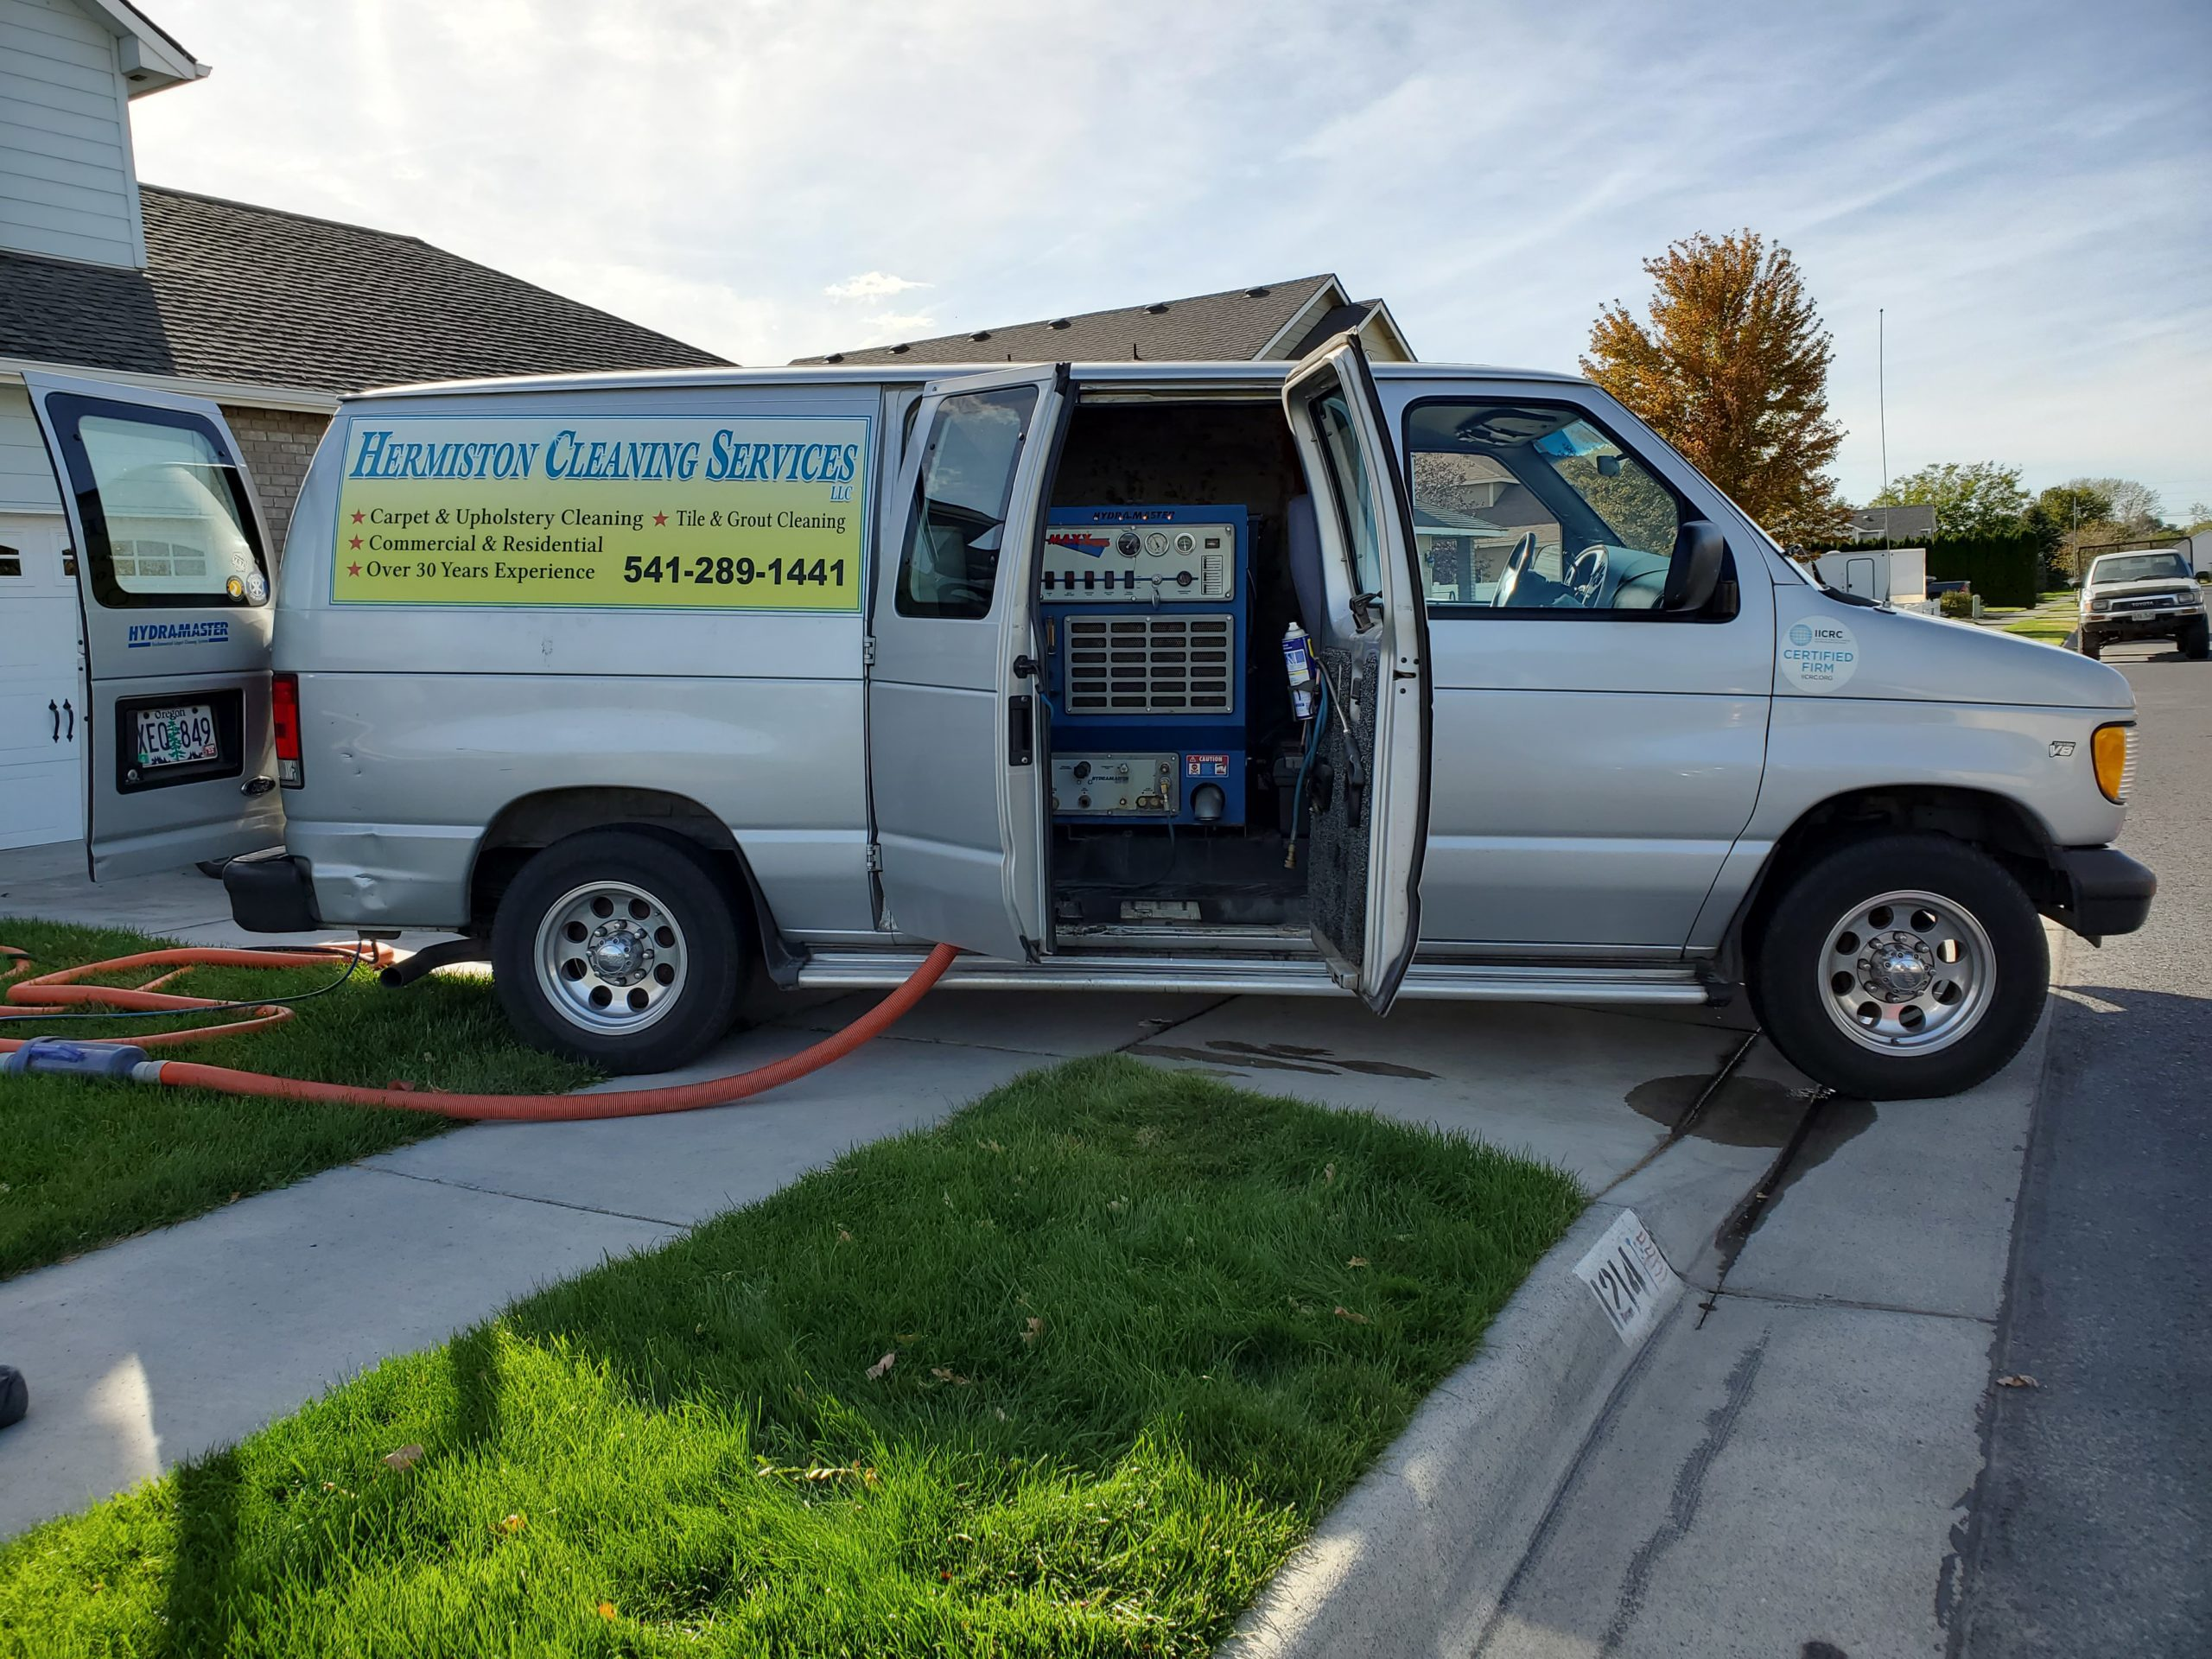 Image of van with truck mounted cleaning system.